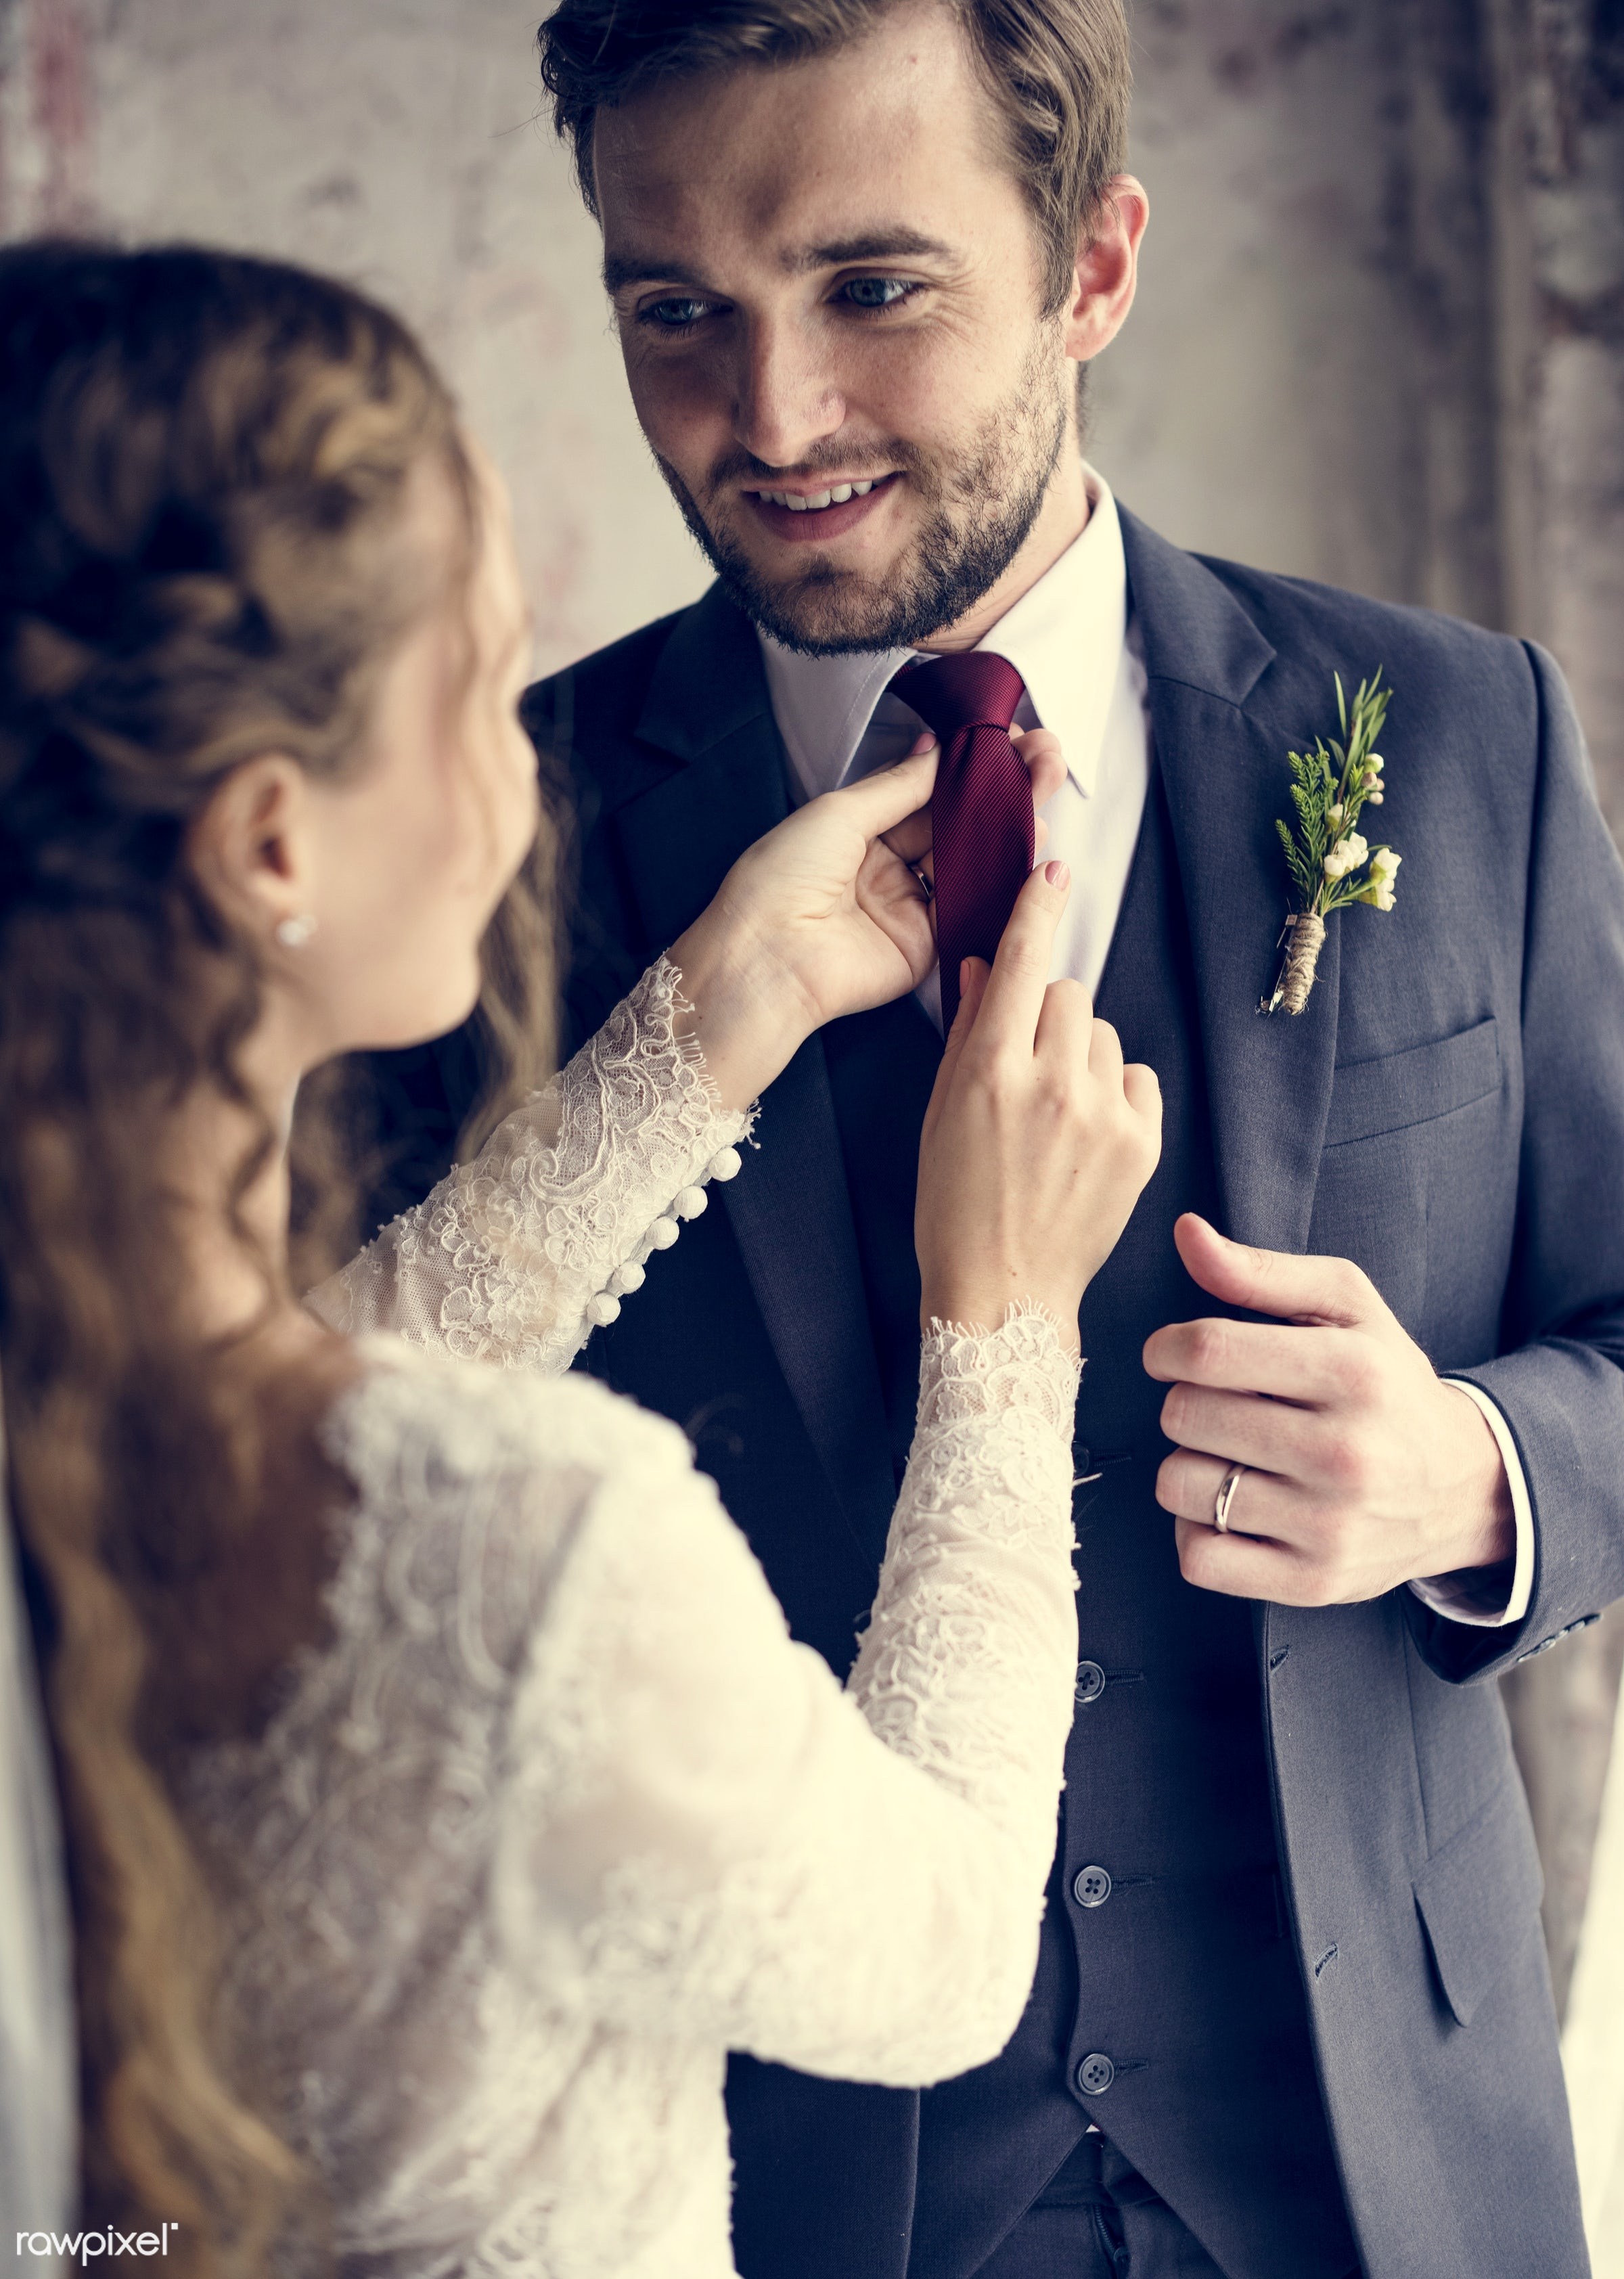 person, tie, dress up, smitten, people, together, caucasian, glamour, love, help, woman, gown, cheerful, marry, vest,...